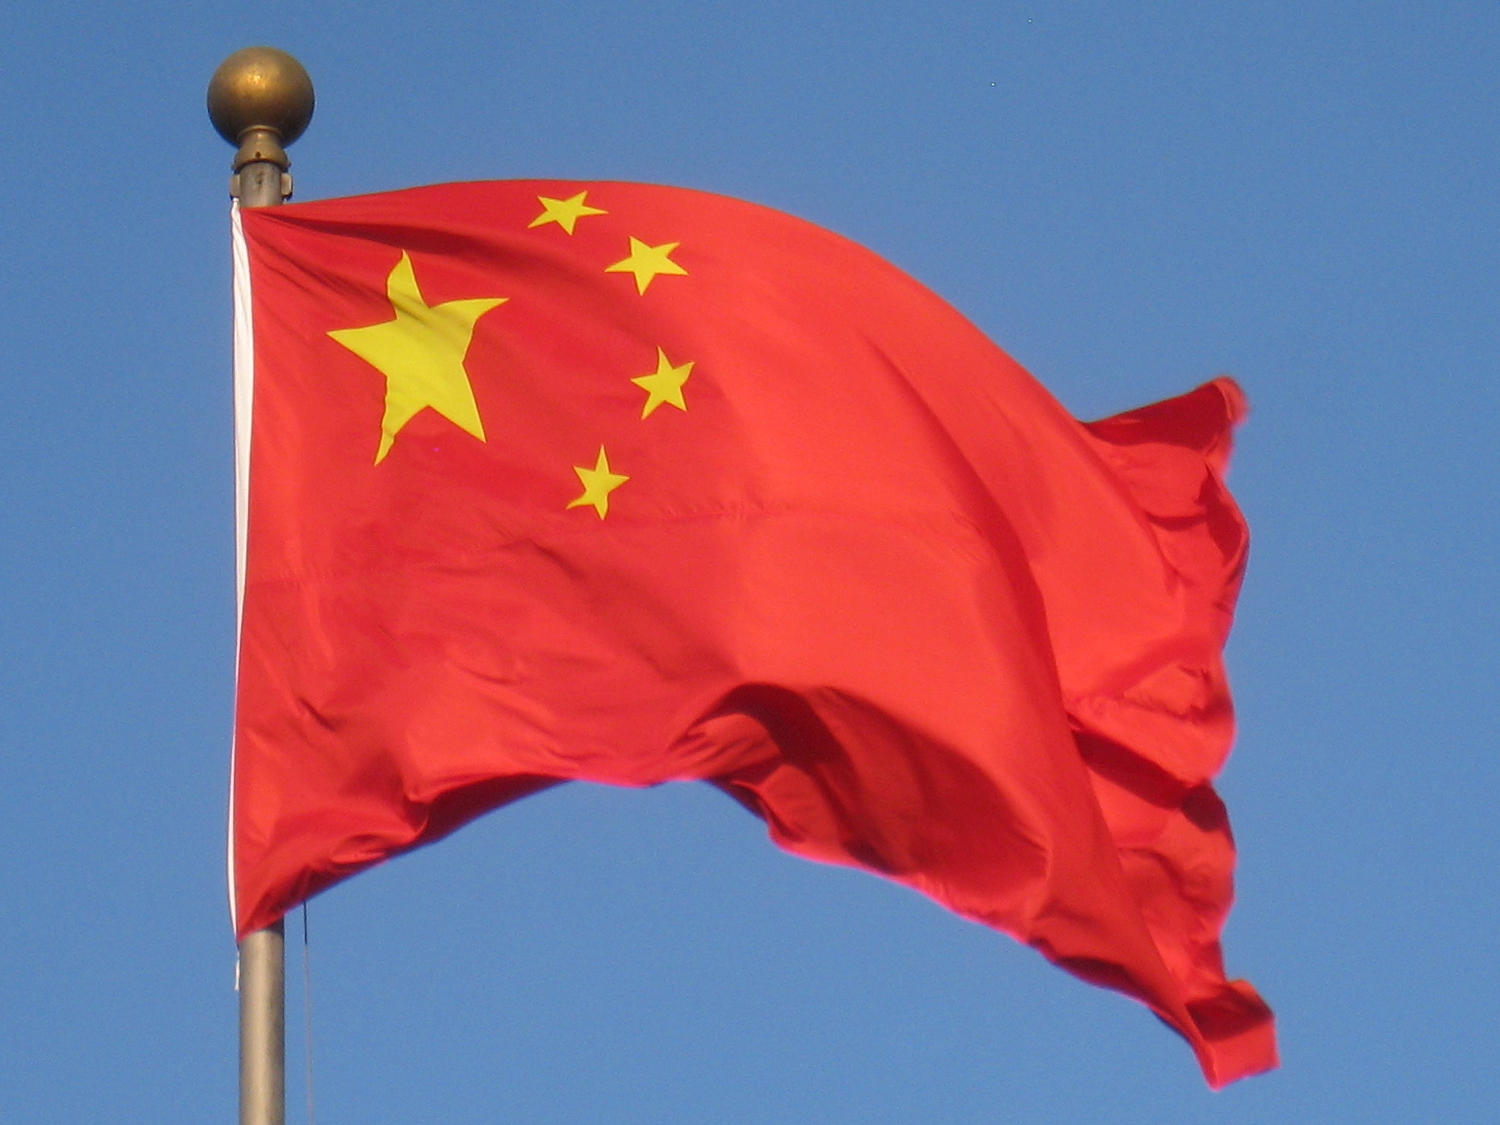 File:Chinese flag (Beijing) - IMG 1104.jpg - Wikimedia Commons